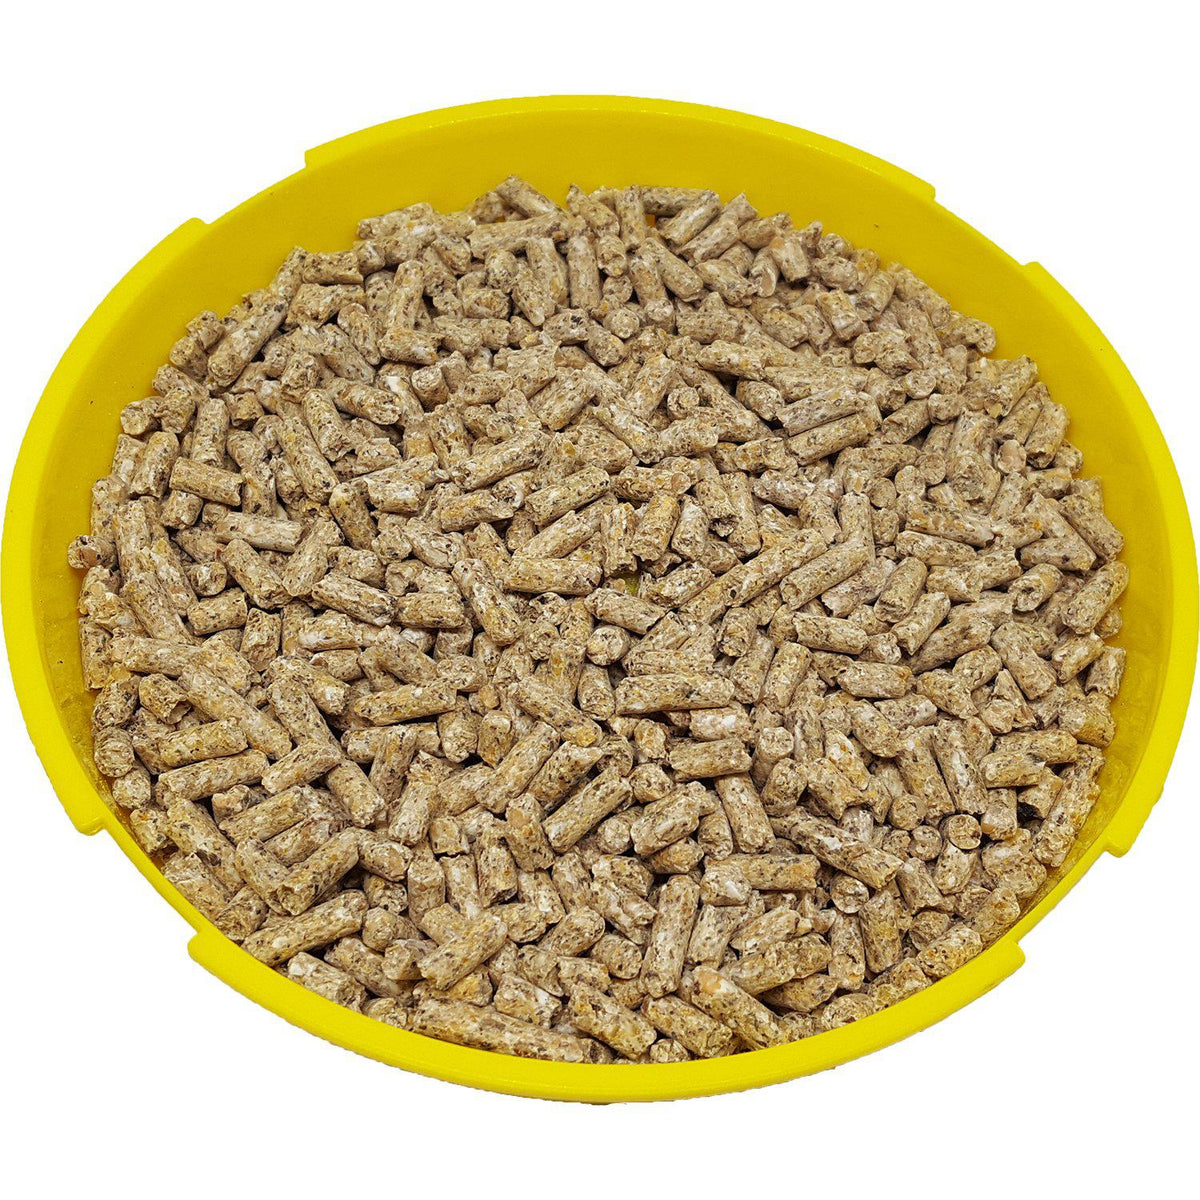 Shur-Gain® Homestead 20% Turkey Grower Ration Pellets 25 KG Bag - Critter Country Supply Ltd.